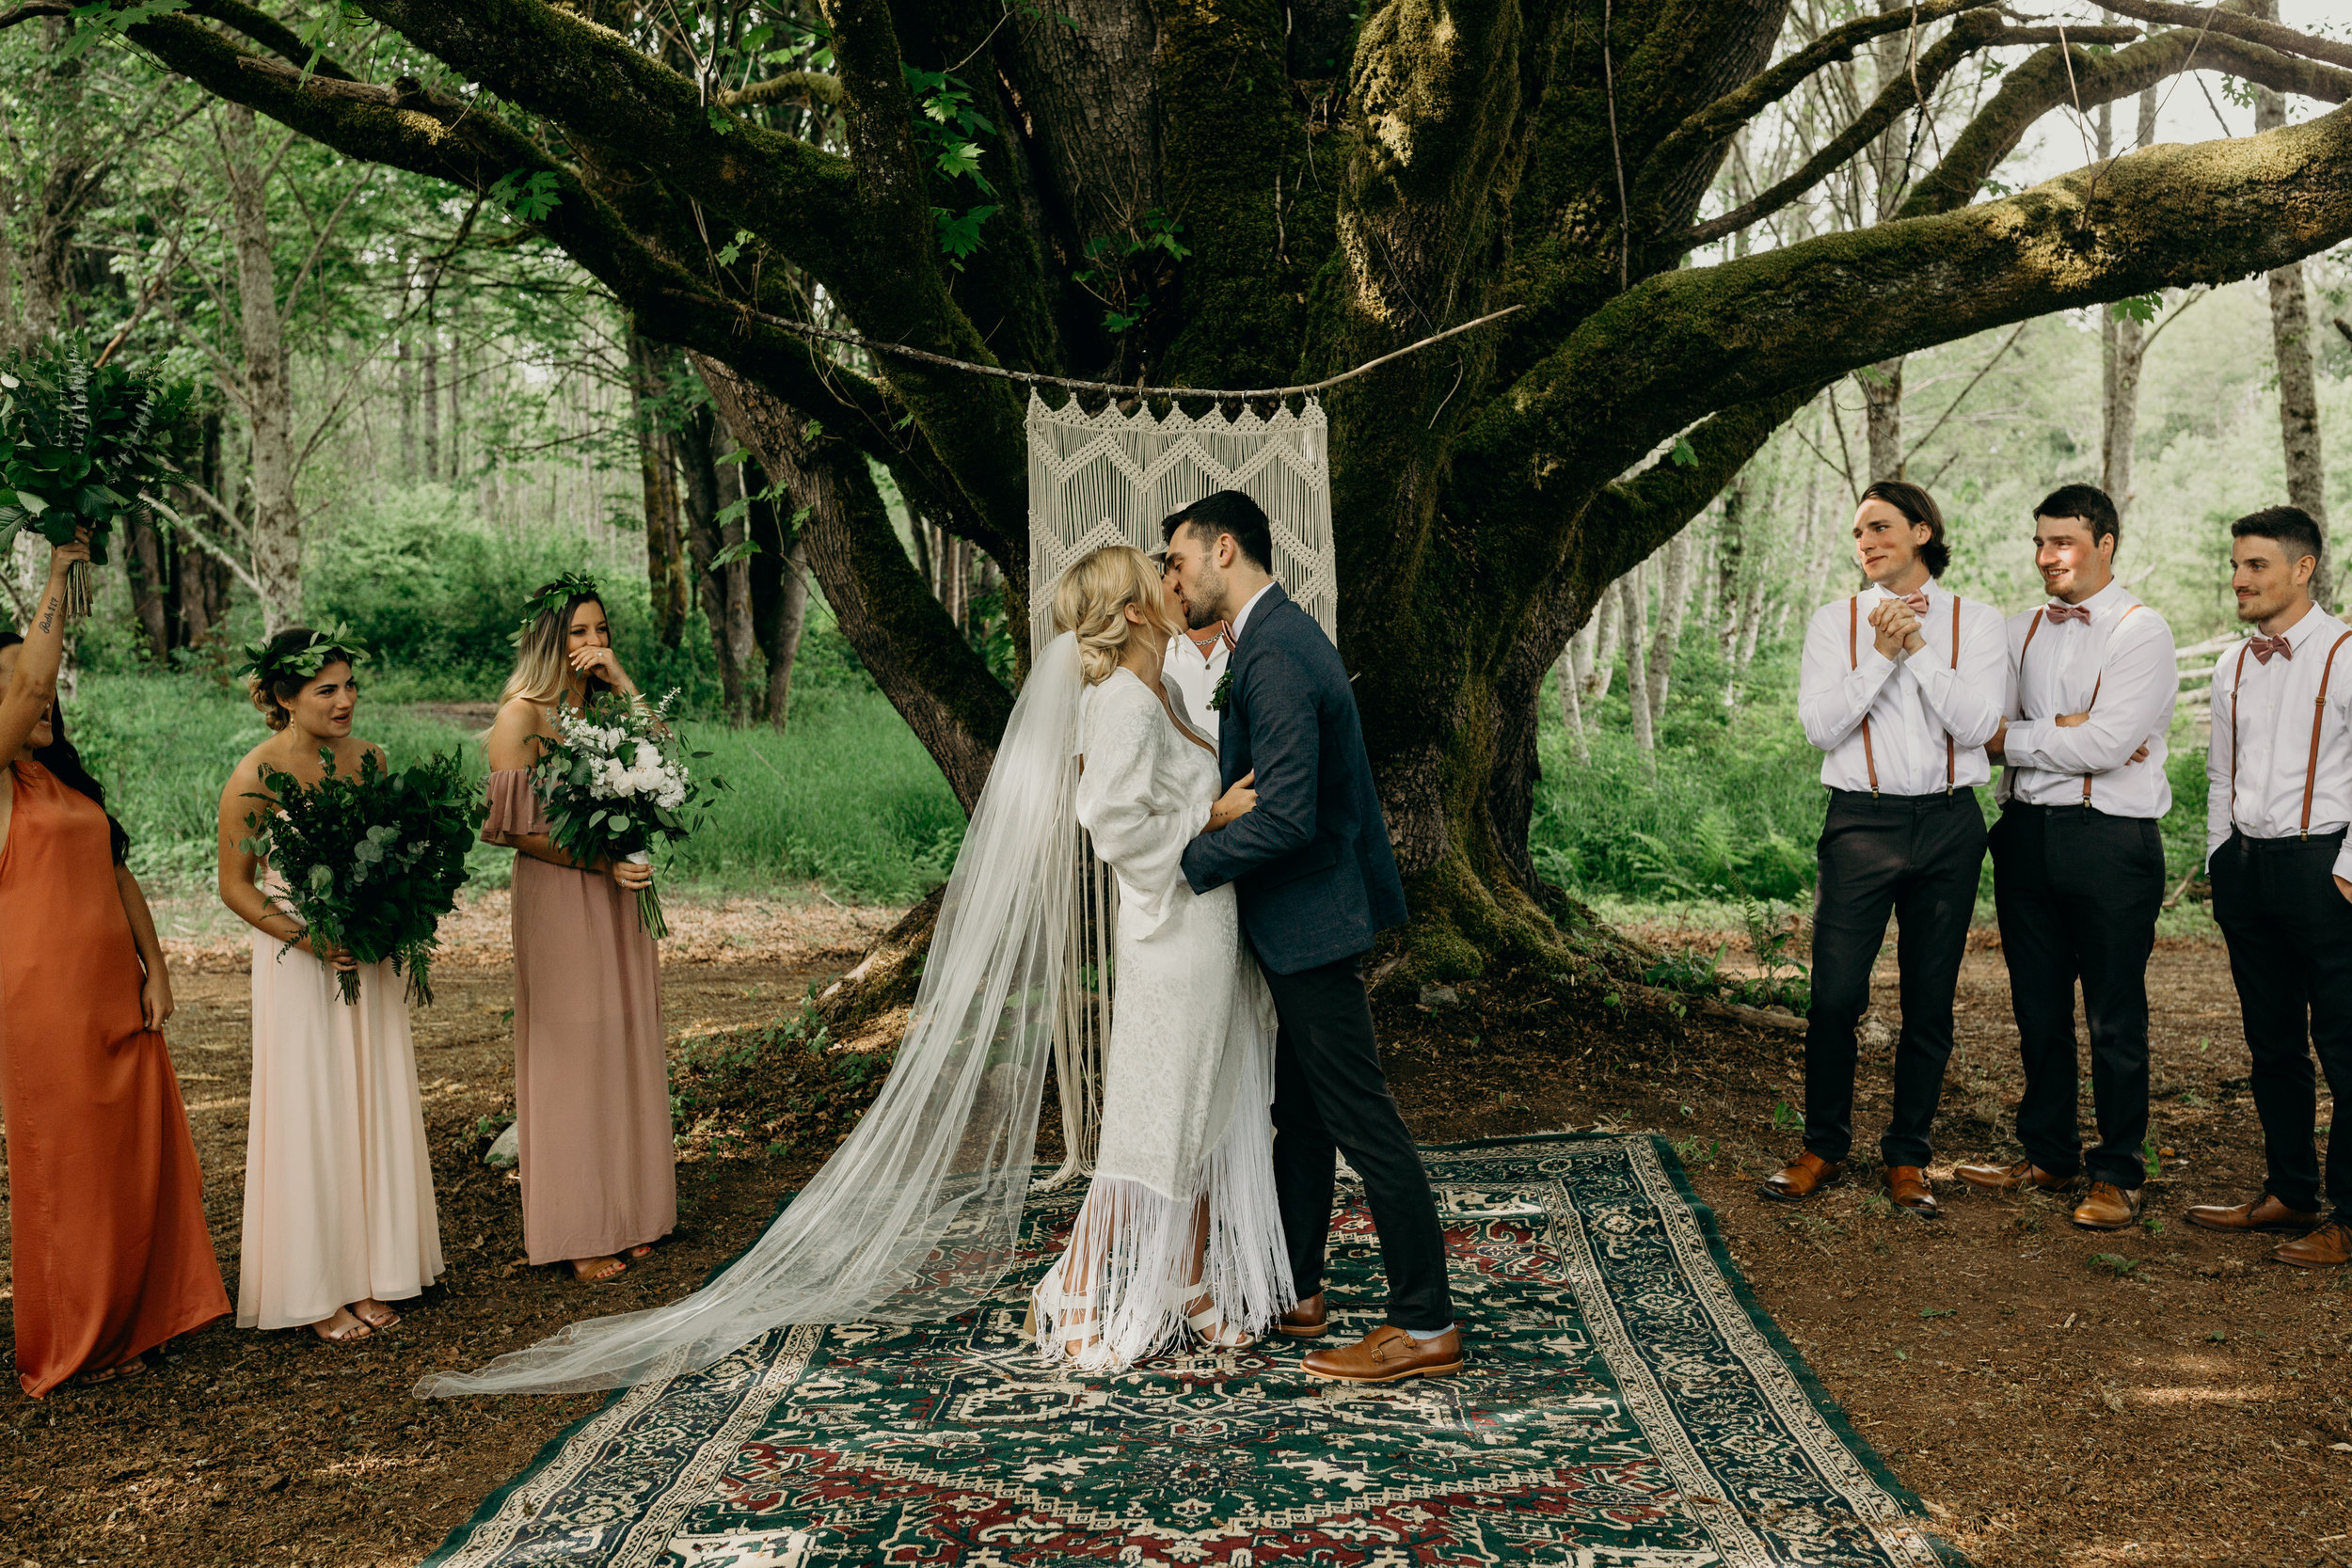 The most beautiful, calm loving day of my life. Our photos by Warren blew us out of the water by his ability to capture the best moments and our love story. - Jared & Olivia